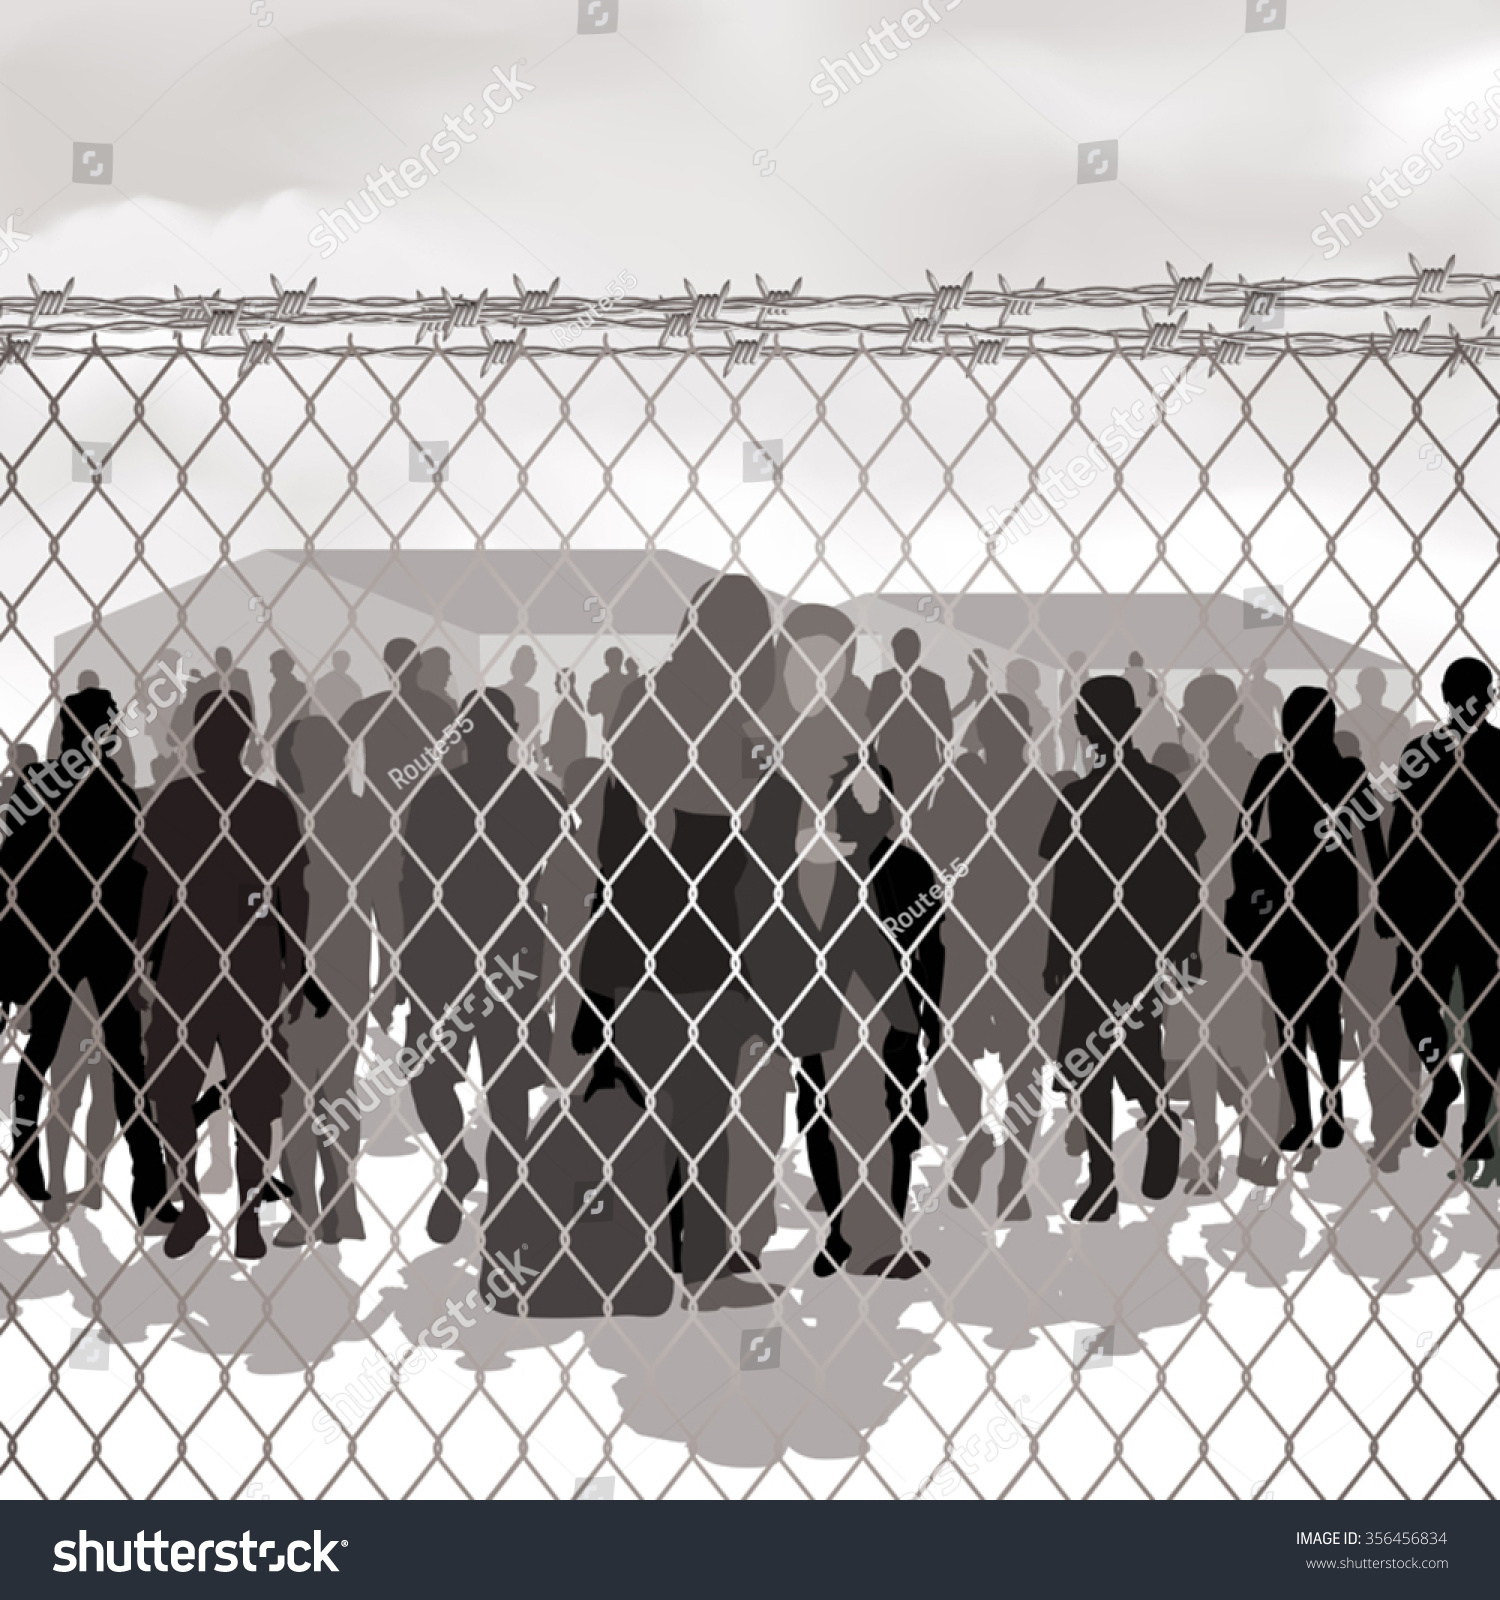 Refugees Behind Chain Link Fence Barbed Stock Vector (2018 ...